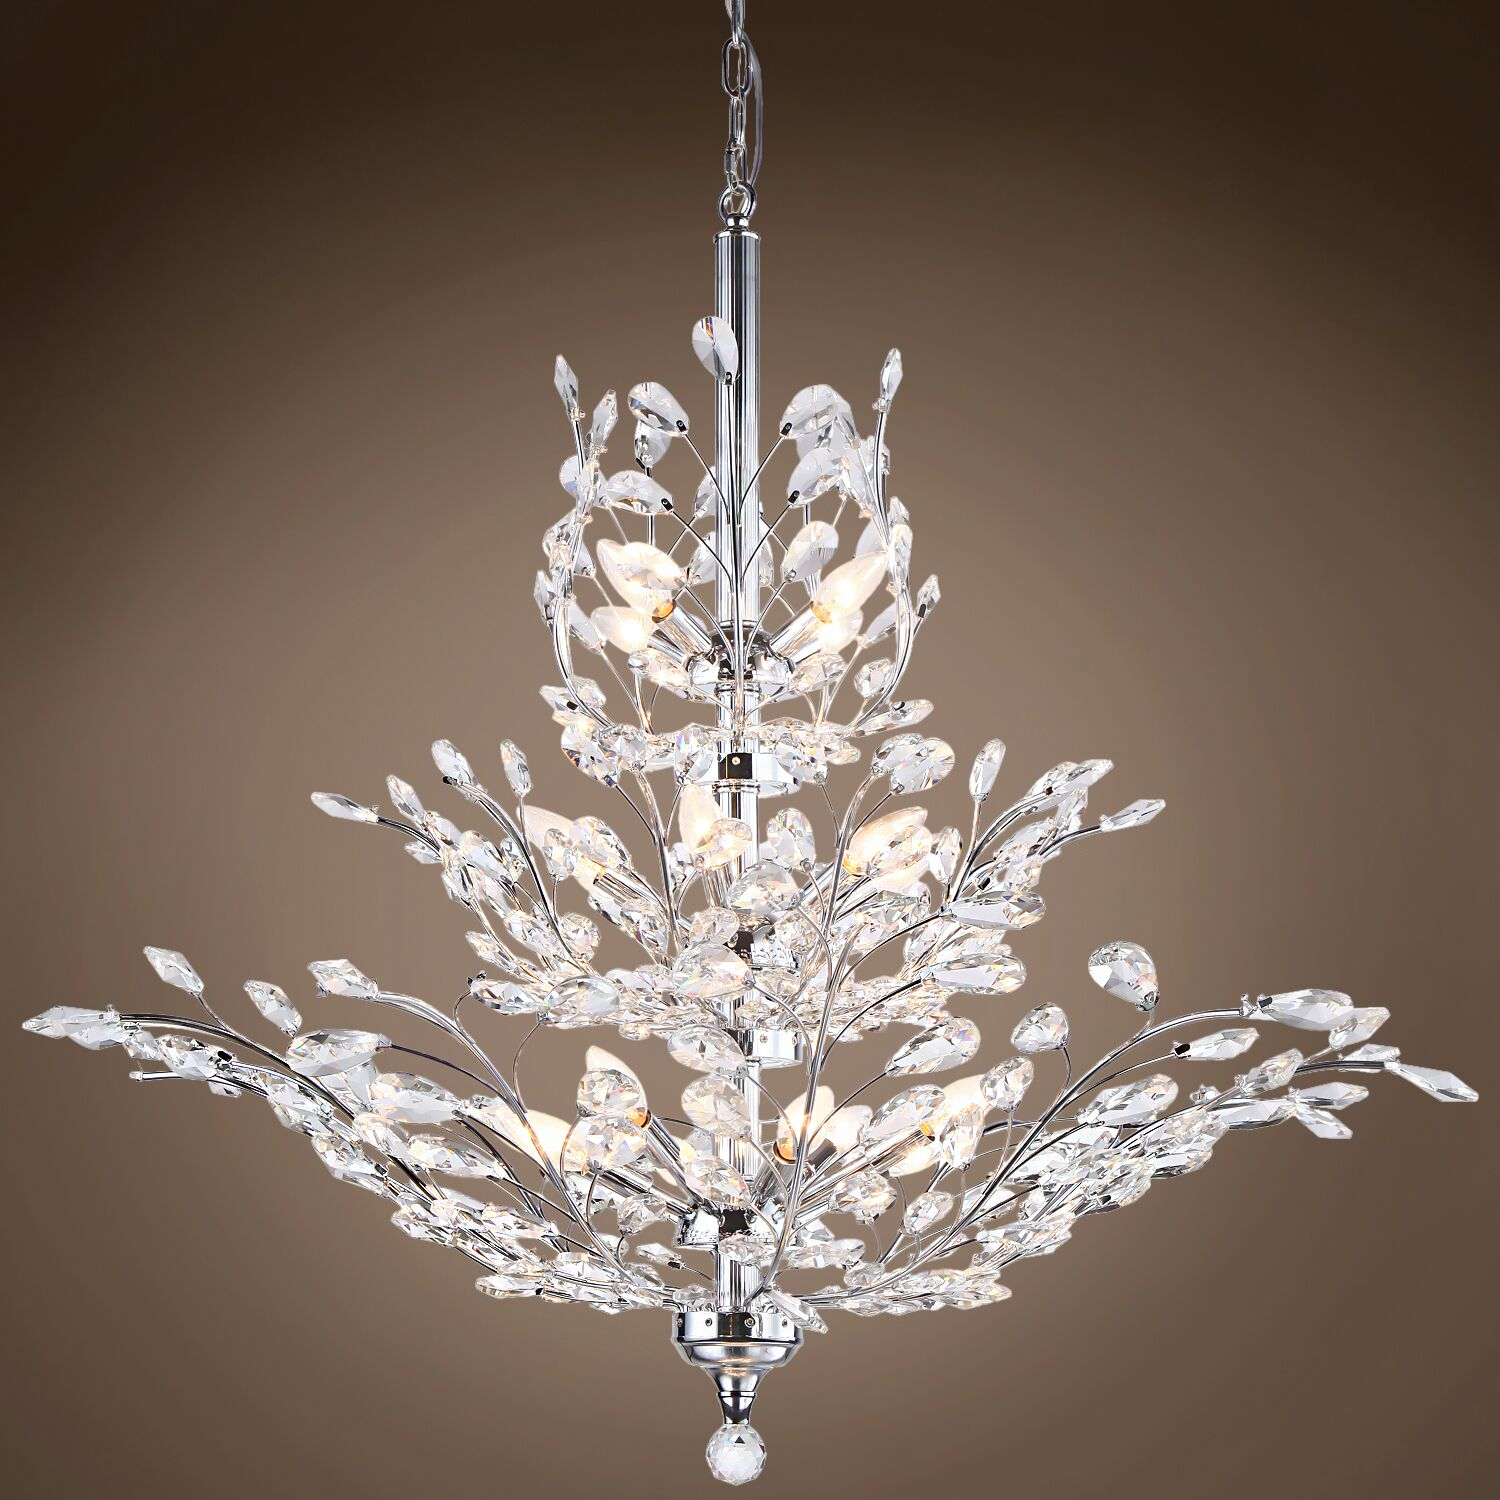 Mefford 13-Light Candle Style Chandelier Finish: Clear, Crystal Grade: European, Bulb Type: No Bulbs